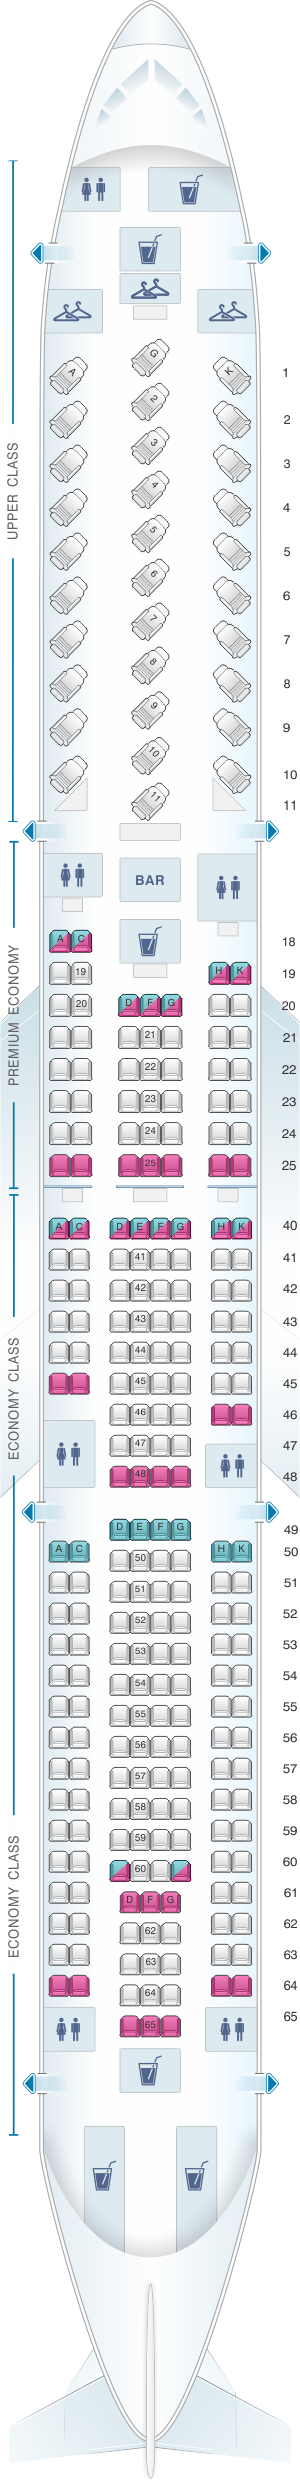 Seat map for Virgin Atlantic Airbus A330 300 re-fitted